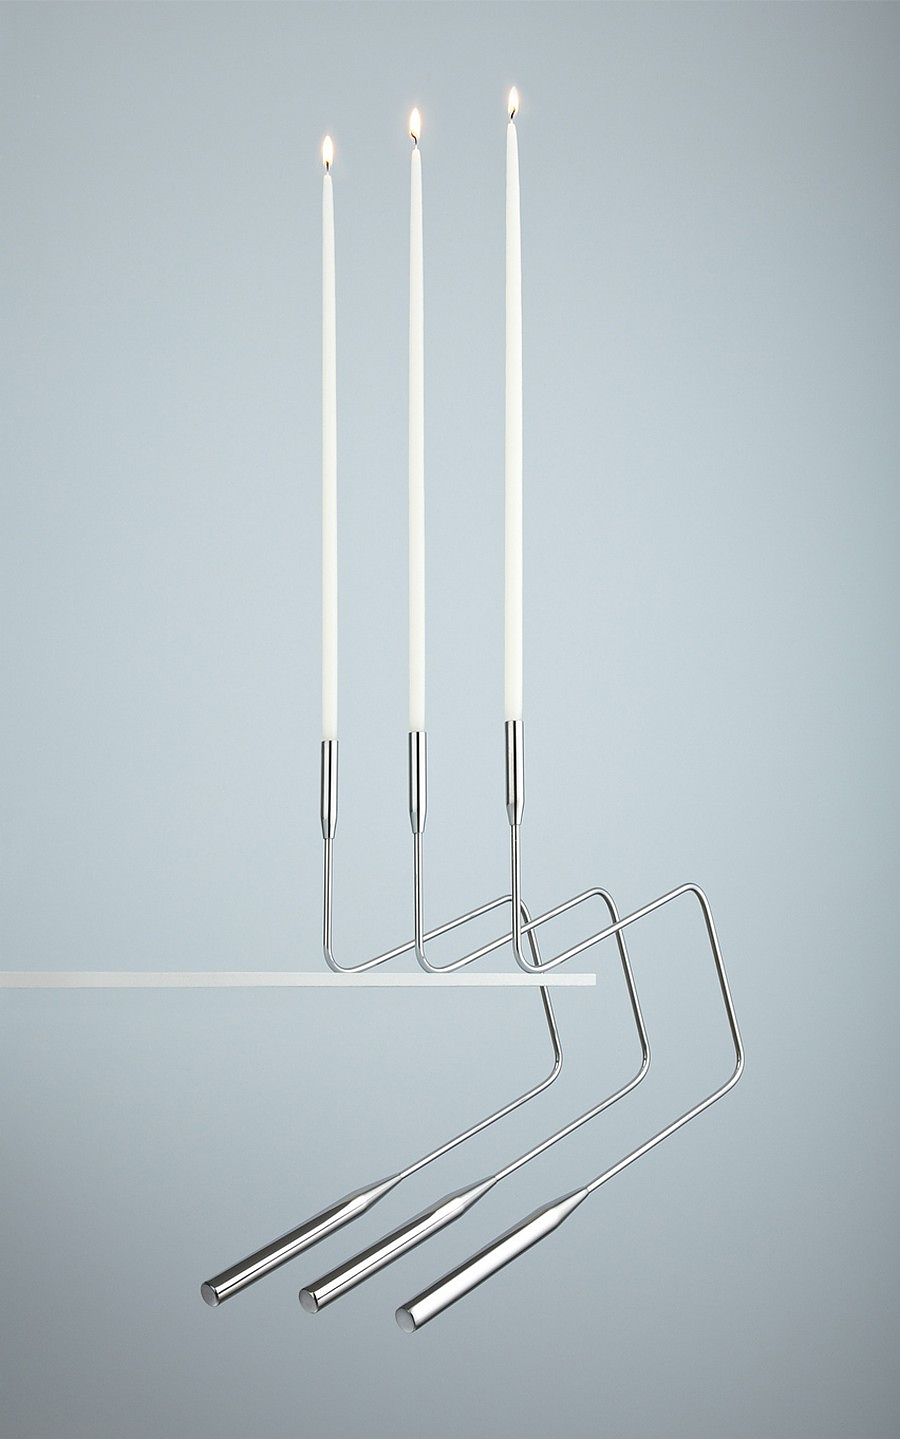 Poise Counterweighted Candelabra by Two Create.